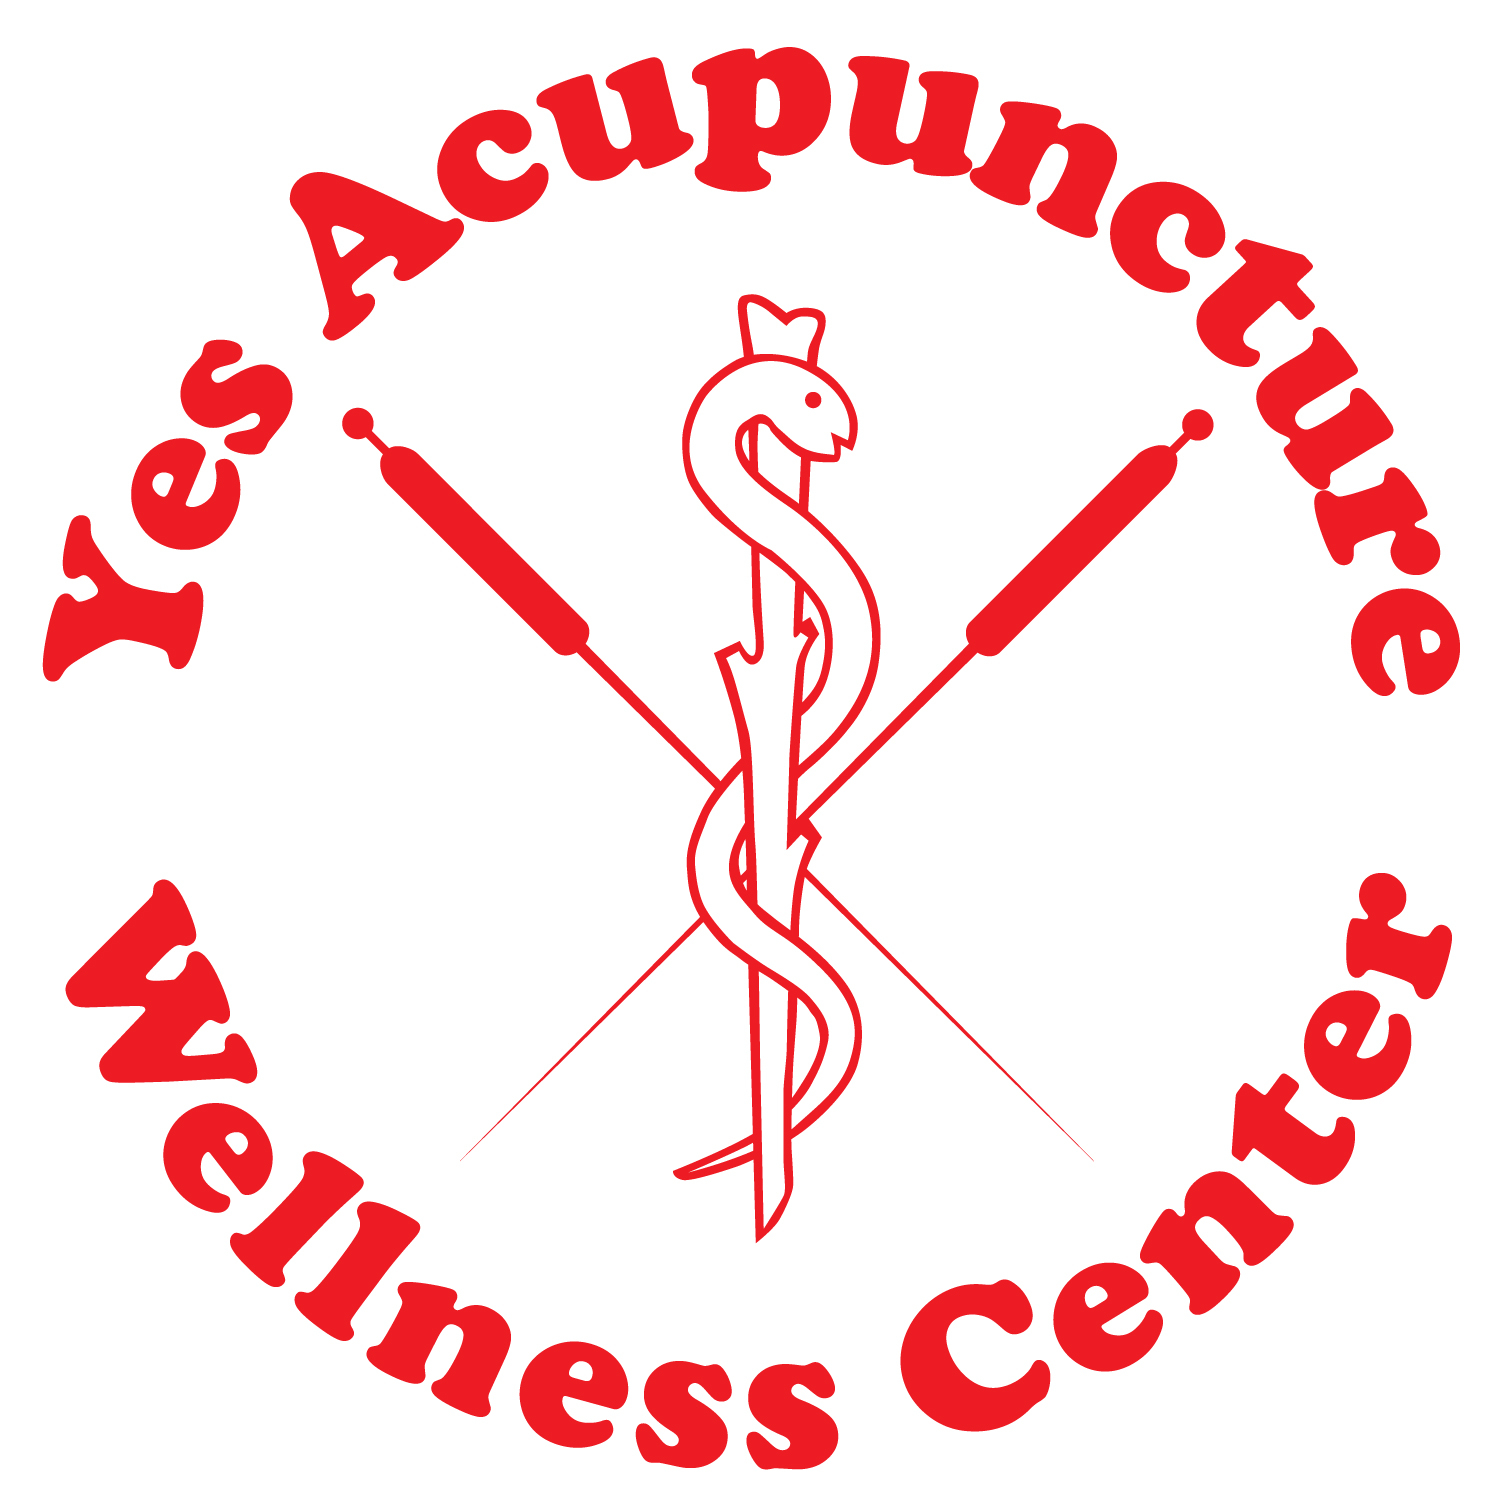 Yes Acupuncture Wellness Center image 6